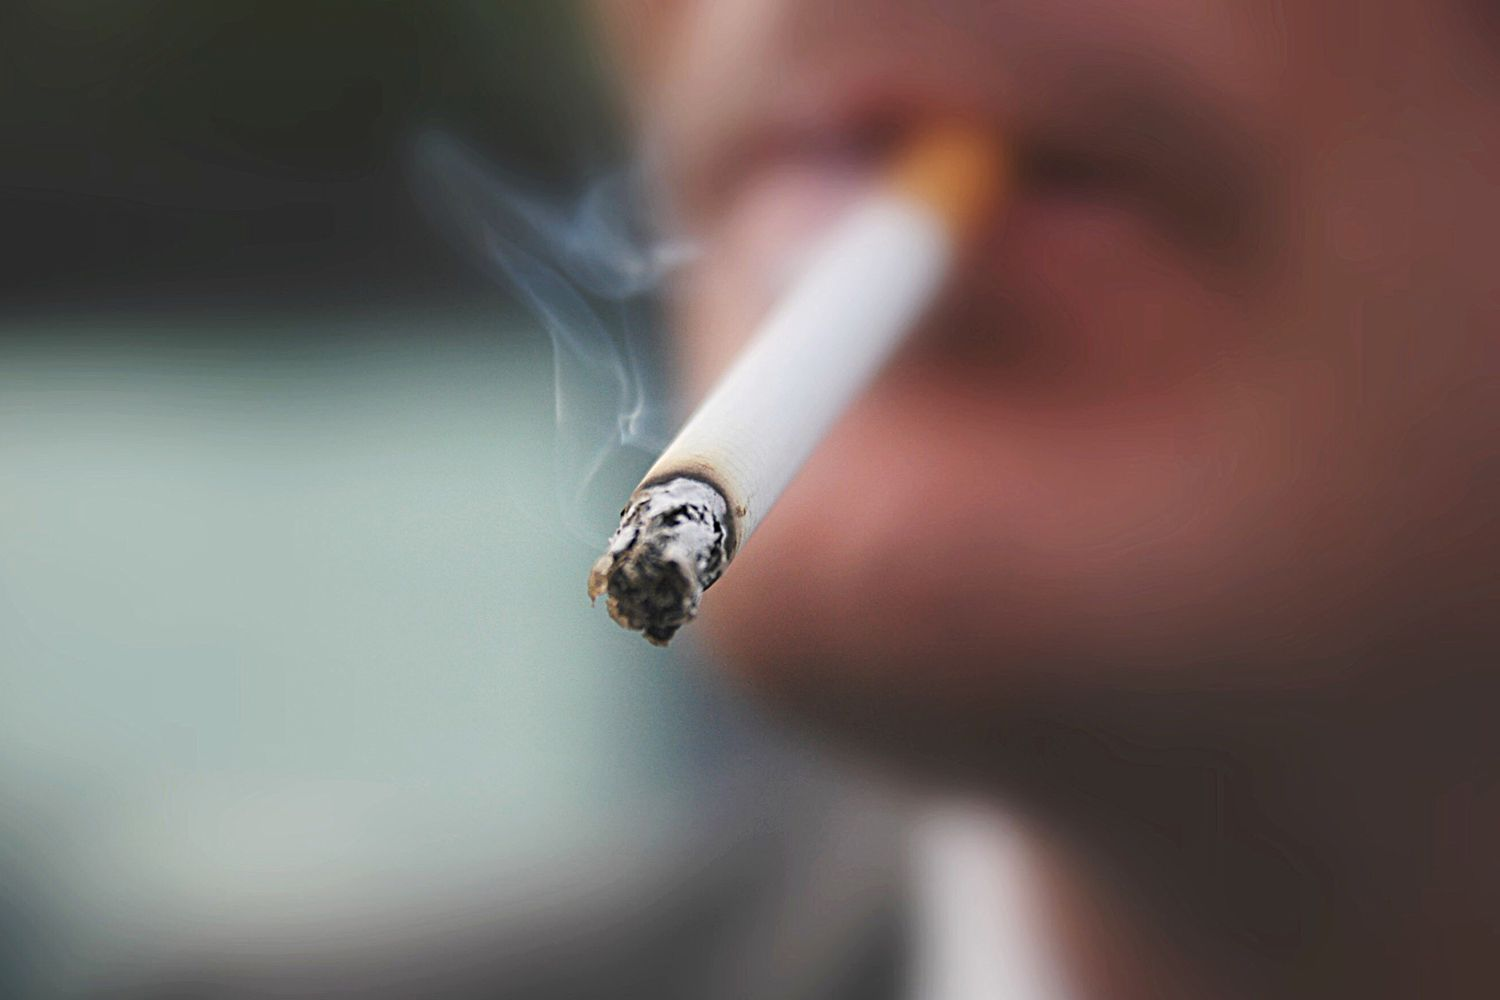 Cigarette smoking can affect the heart.